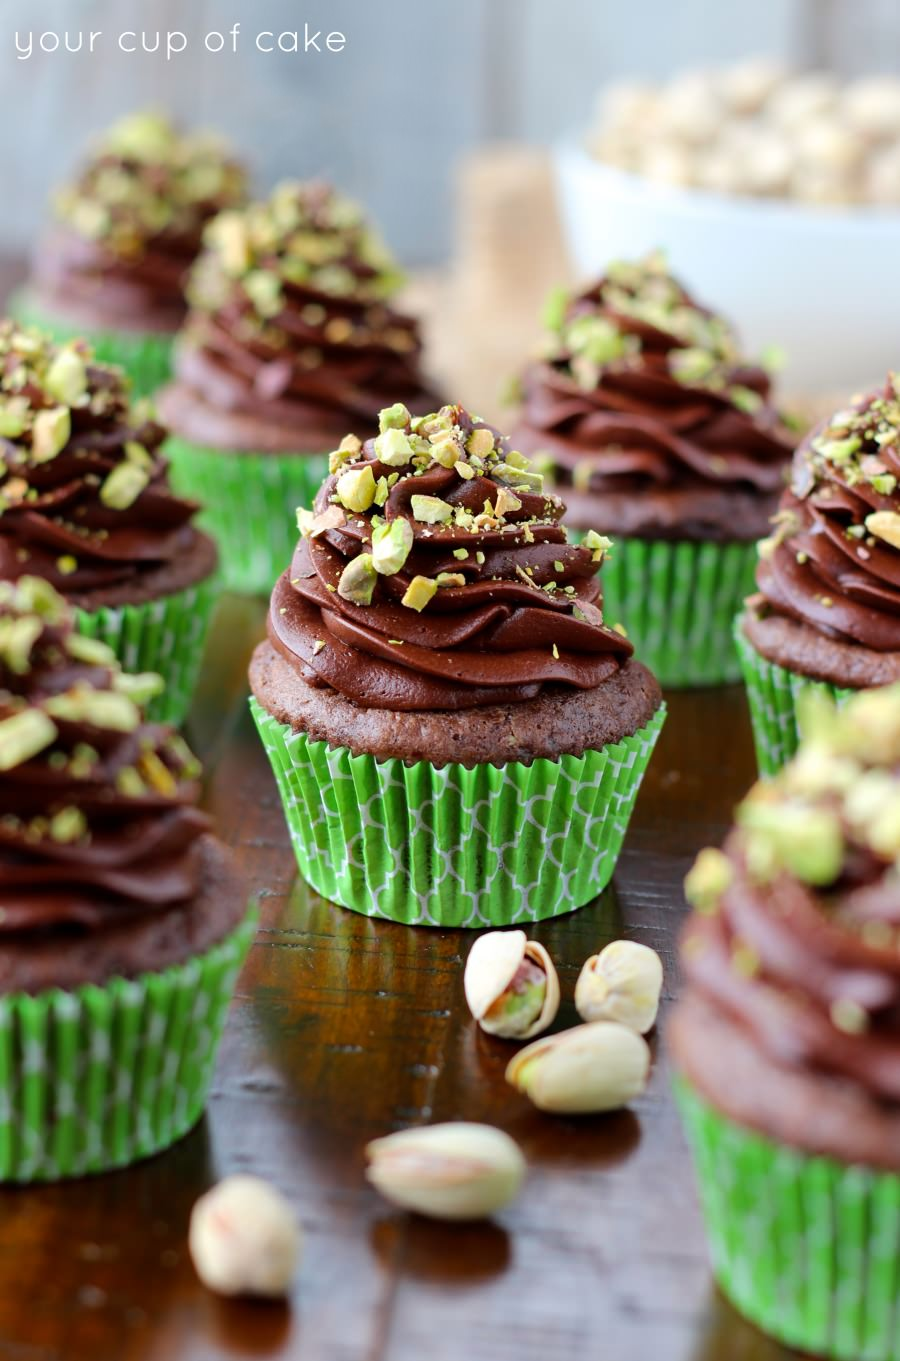 Chocolate Pistachio Cupcakes - Your Cup of Cake